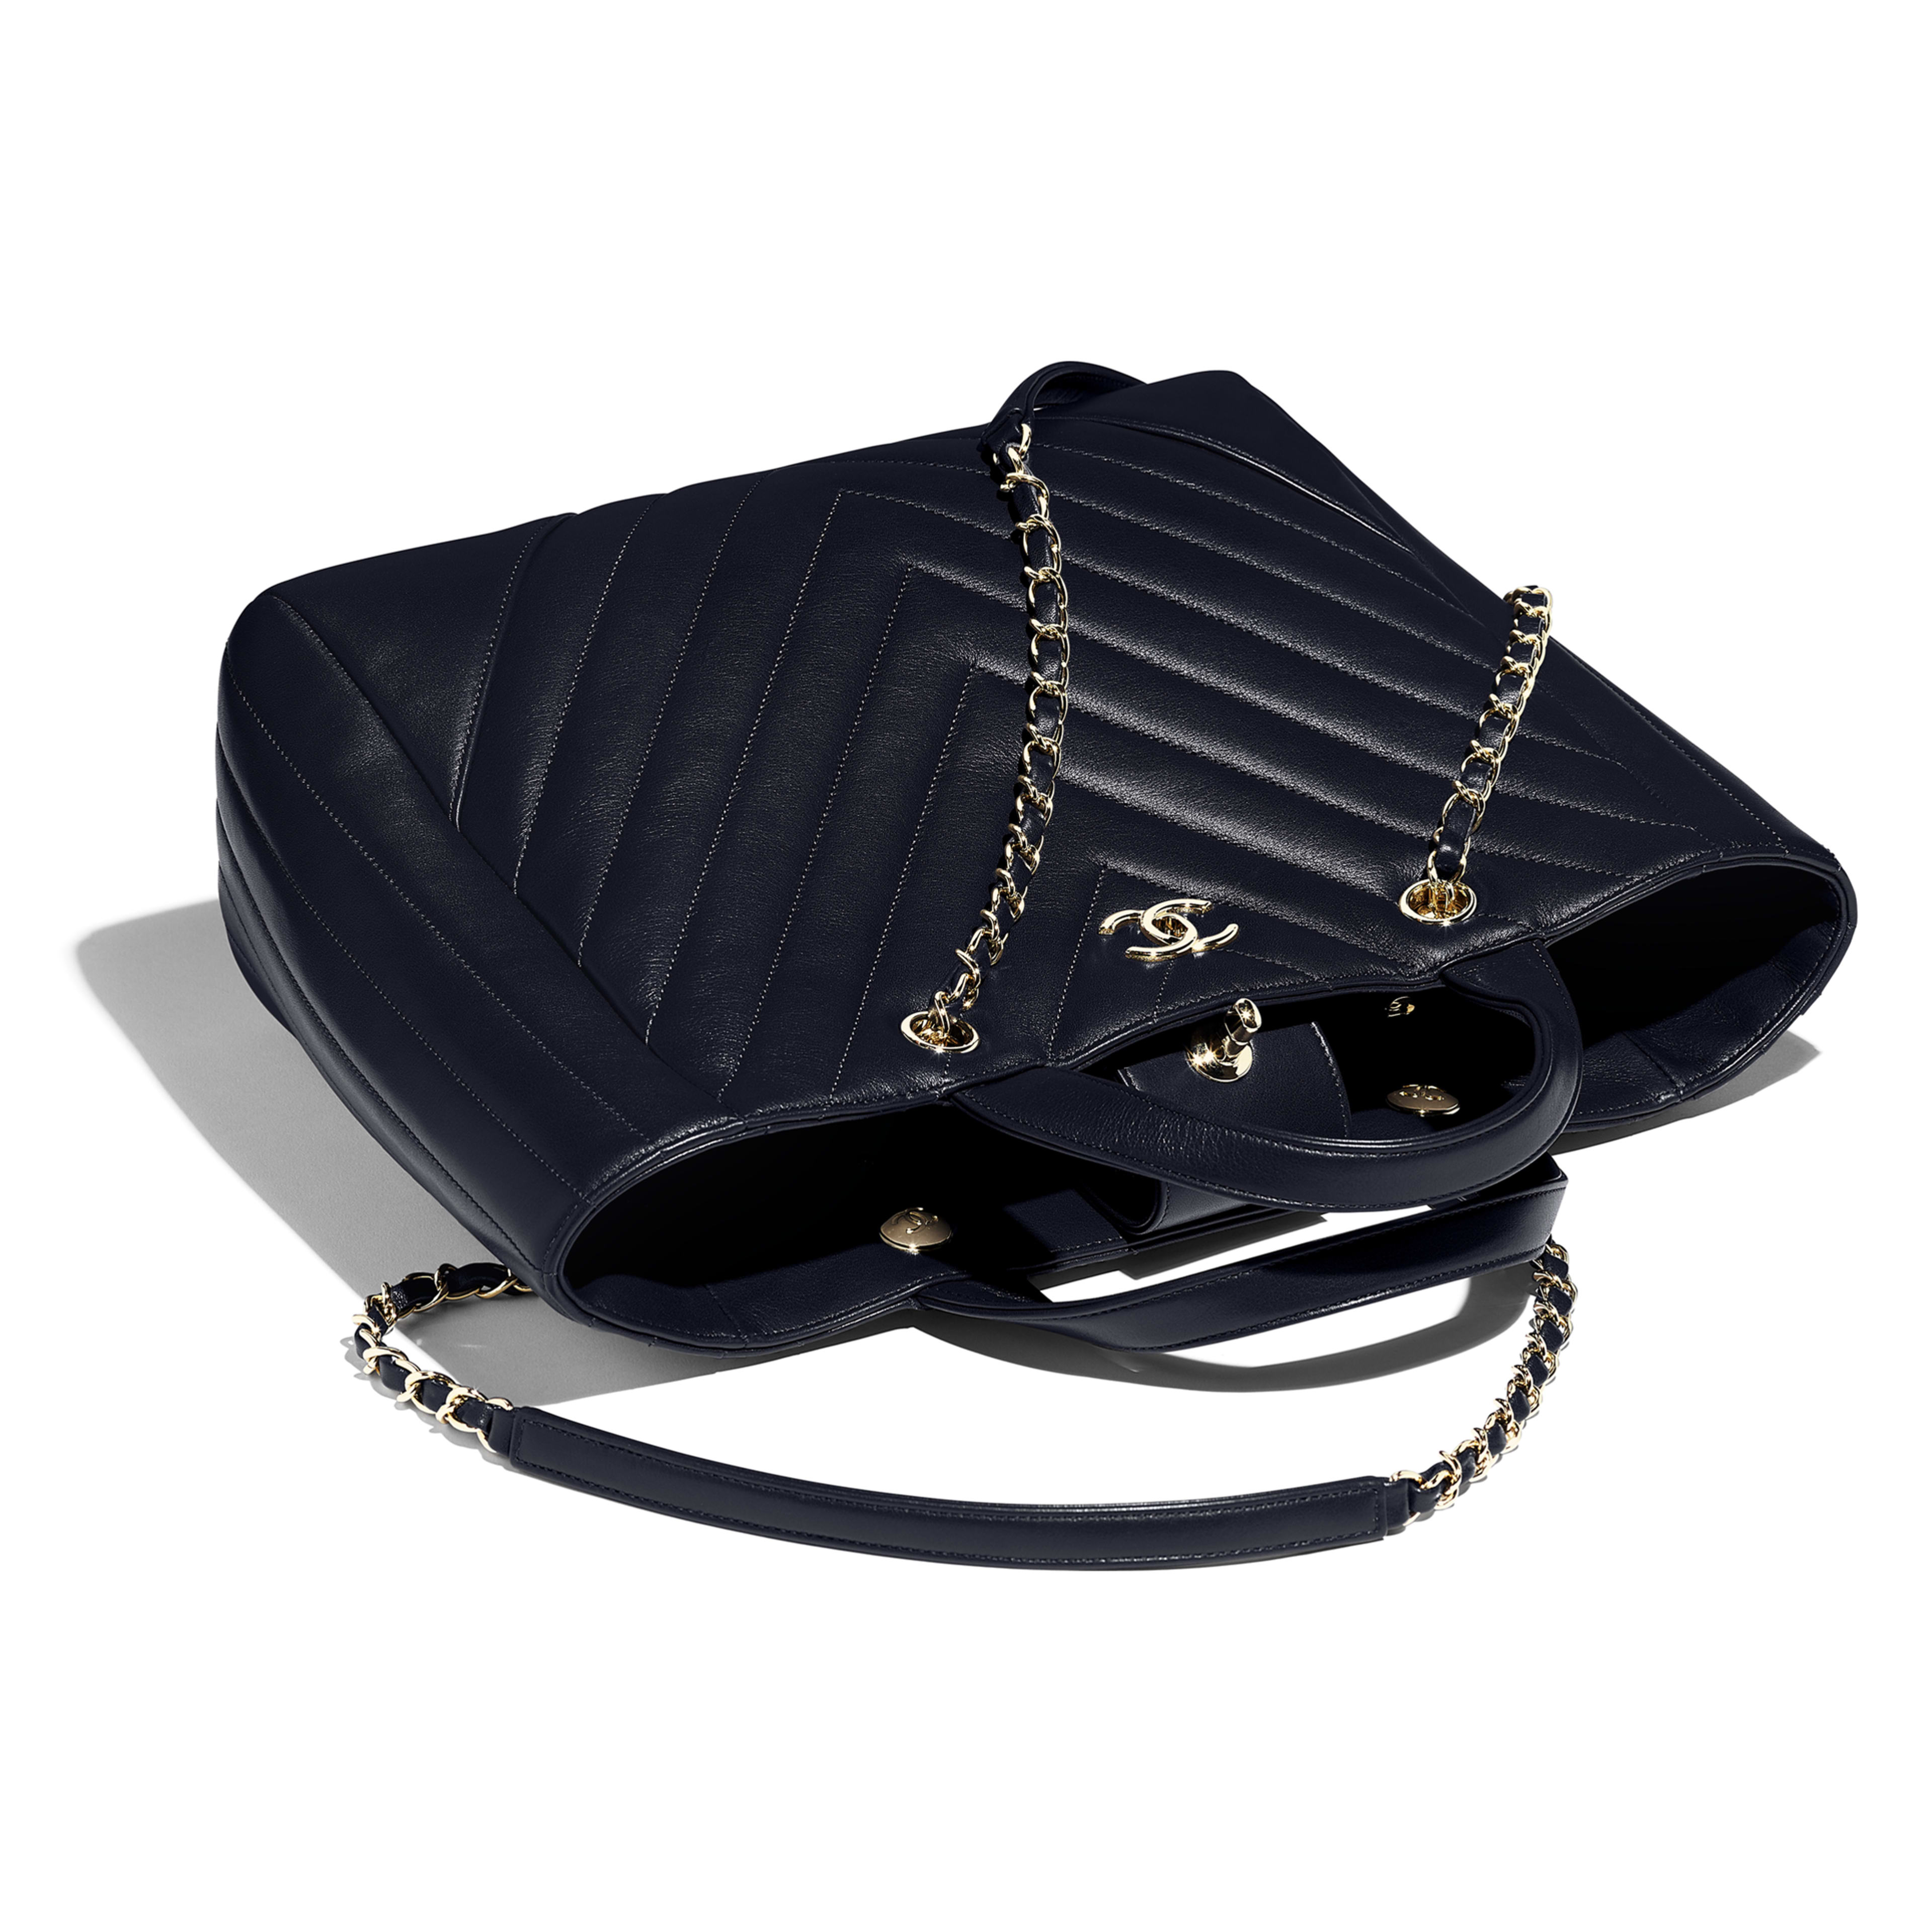 Large Shopping Bag - Navy Blue - Calfskin & Gold-Tone Metal - Other view - see full sized version